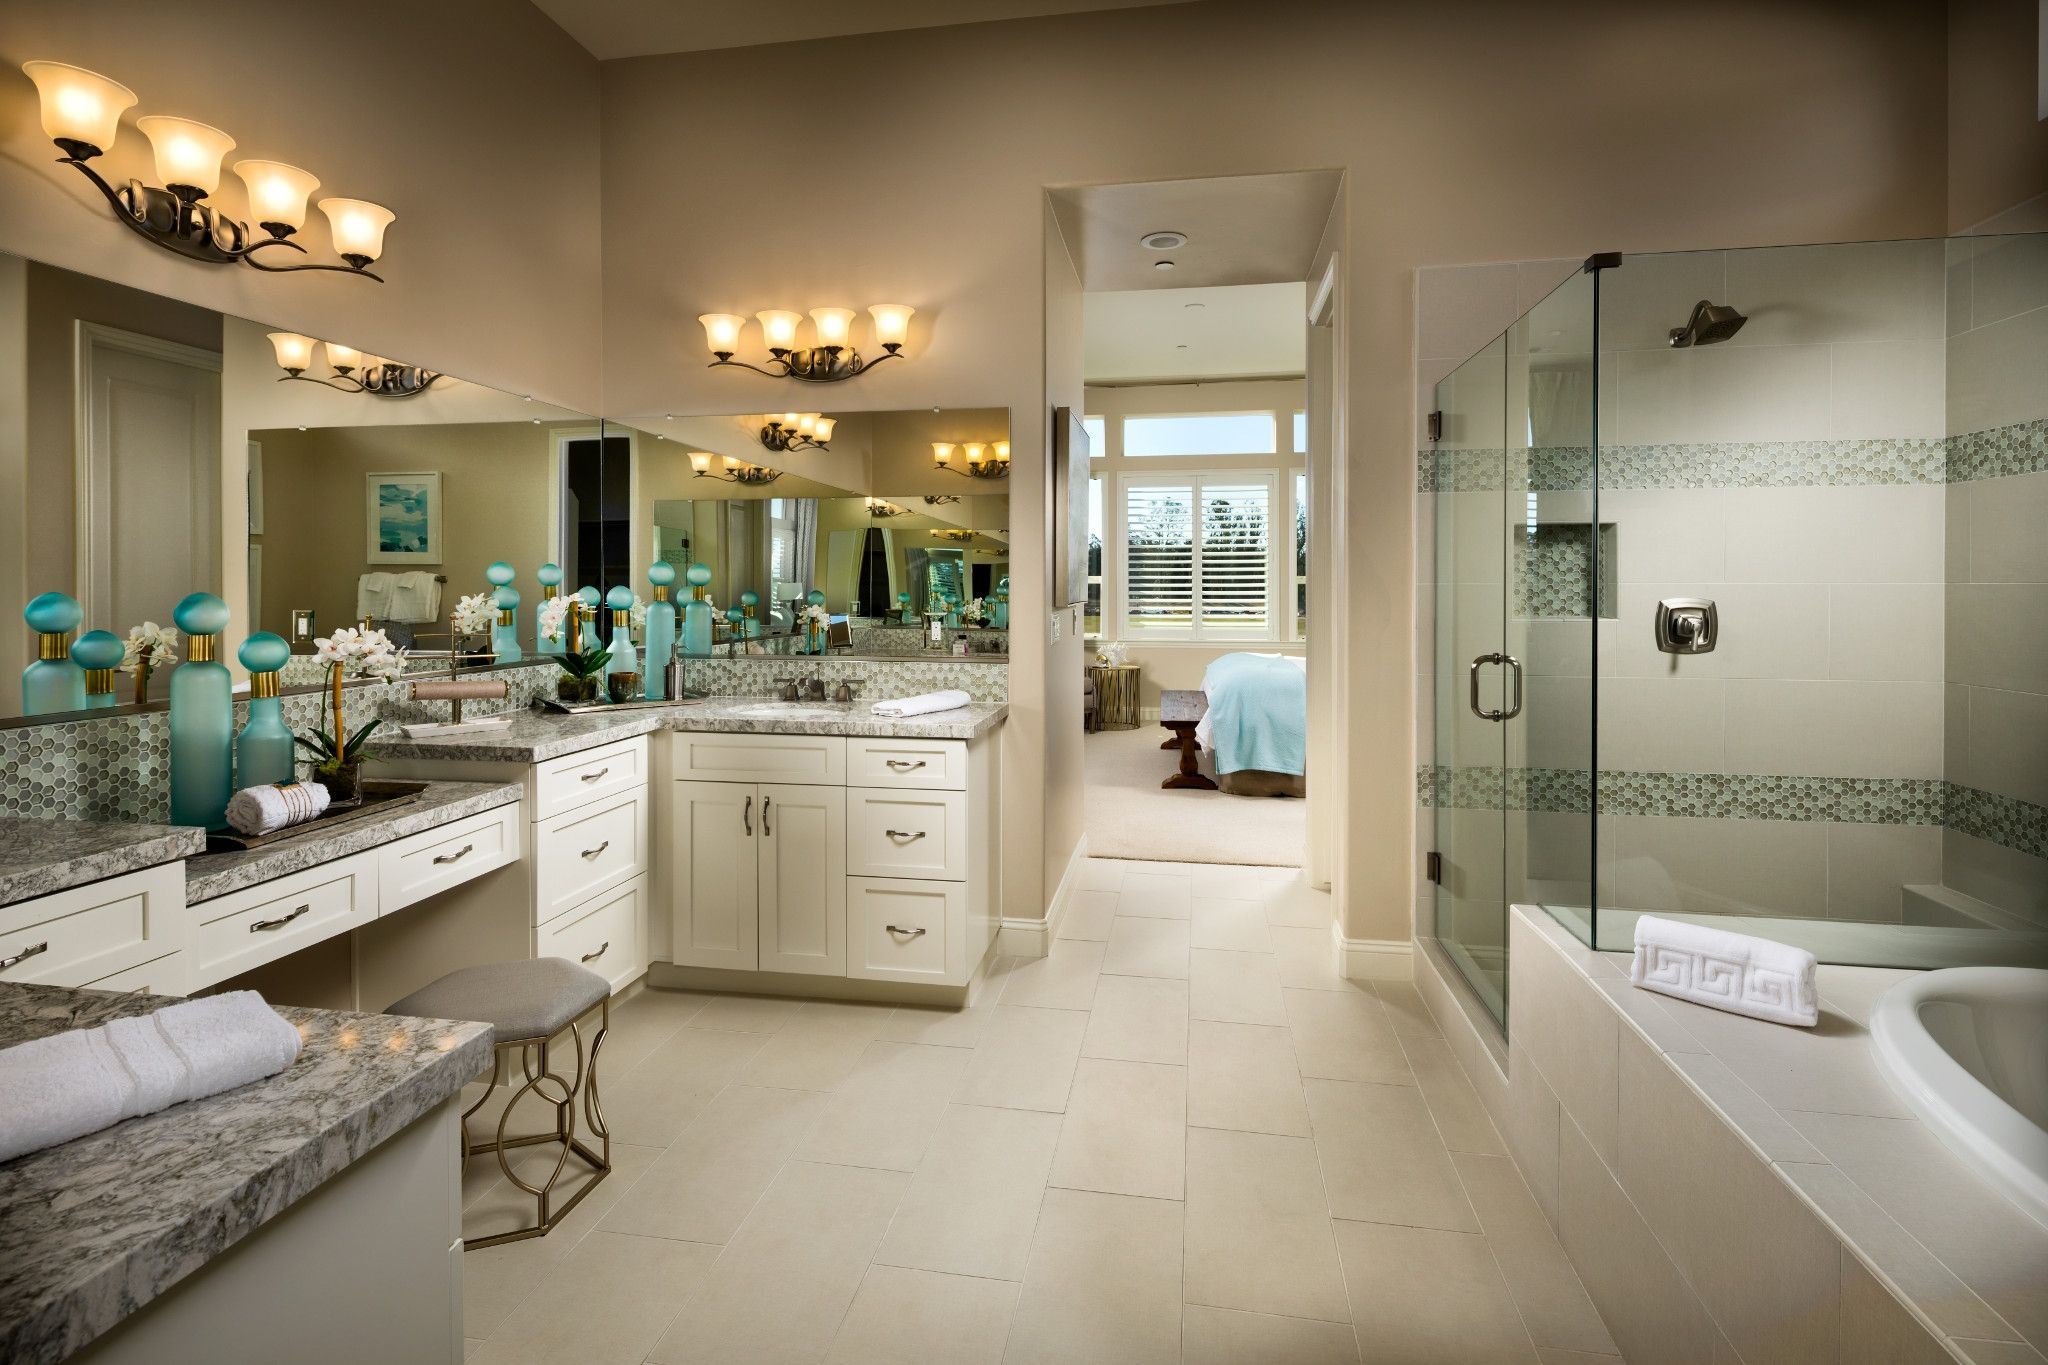 Bathroom featured in the Marsanne By Shea Homes - Trilogy in San Luis Obispo, CA